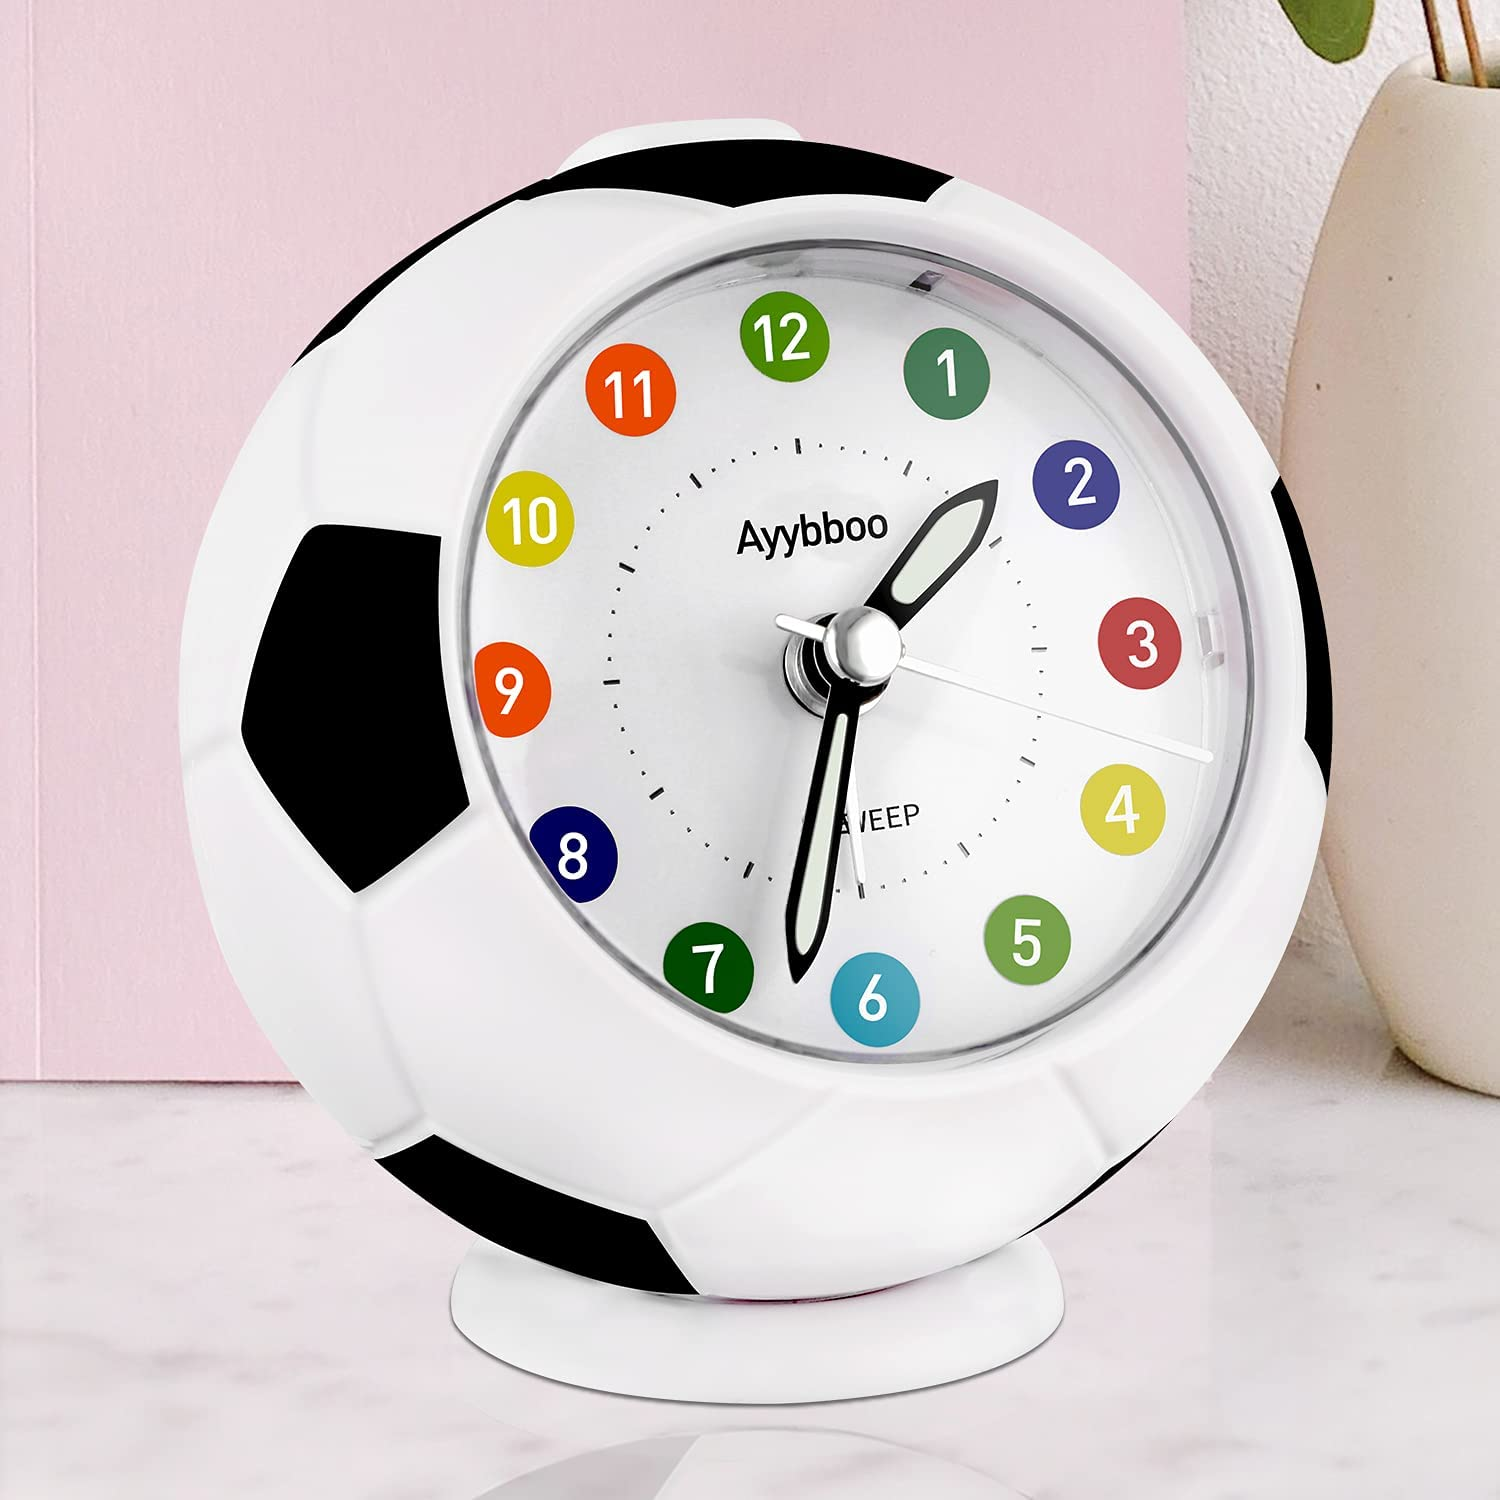 Analog Alarm Clock for Kids Ranking TOP4 Boys Non Football Lowest price challenge Girls Cute Ticking